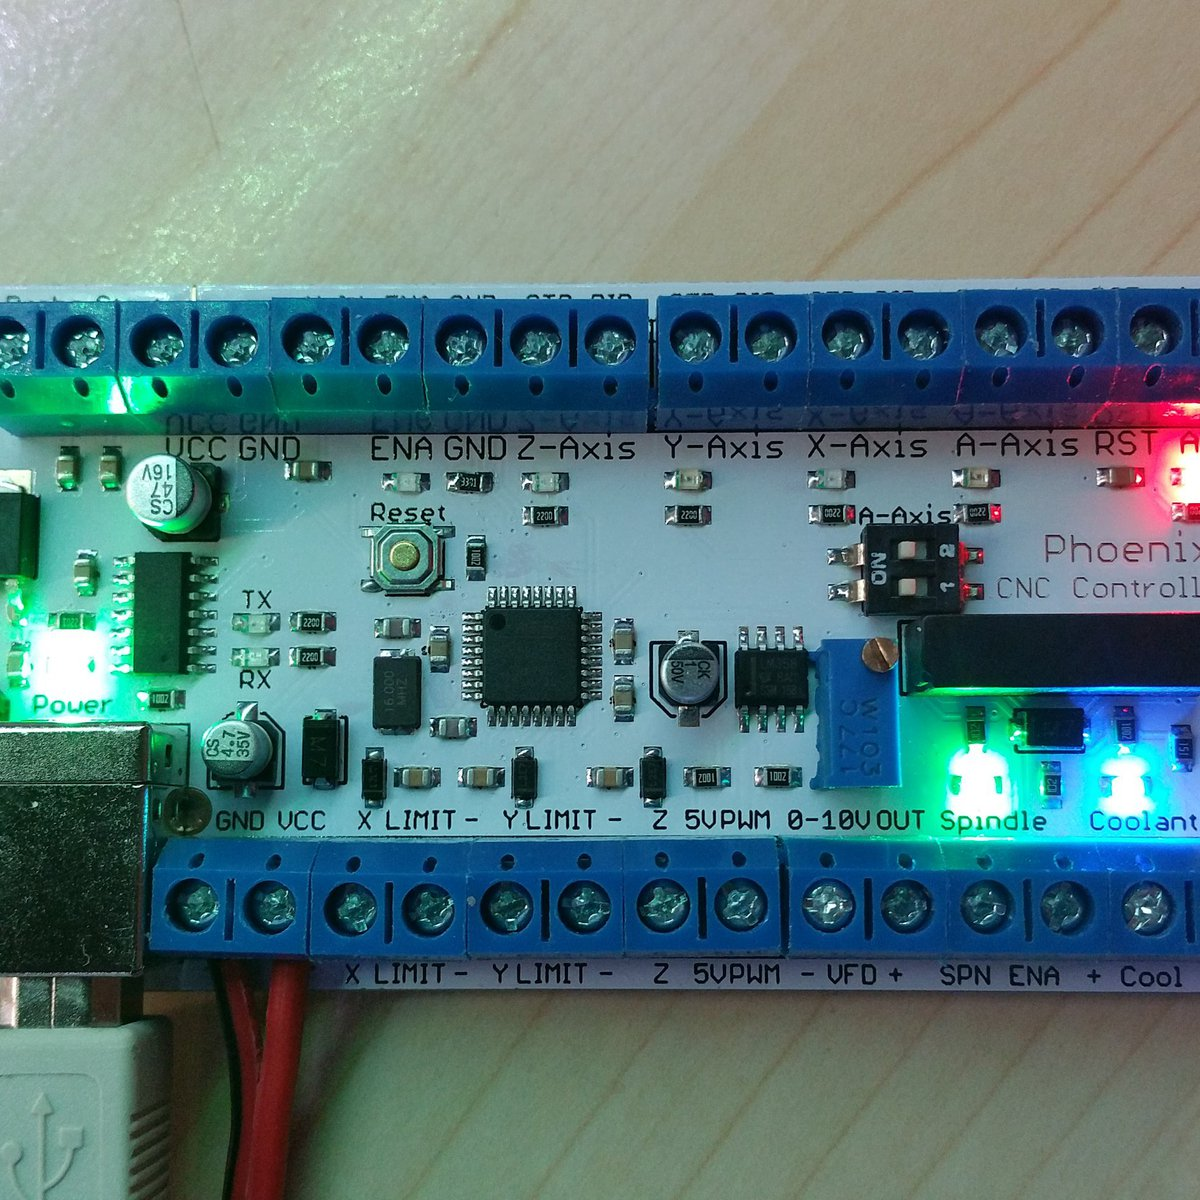 Phoenix USB CNC Controller with PWM Output from Phoenix CNC